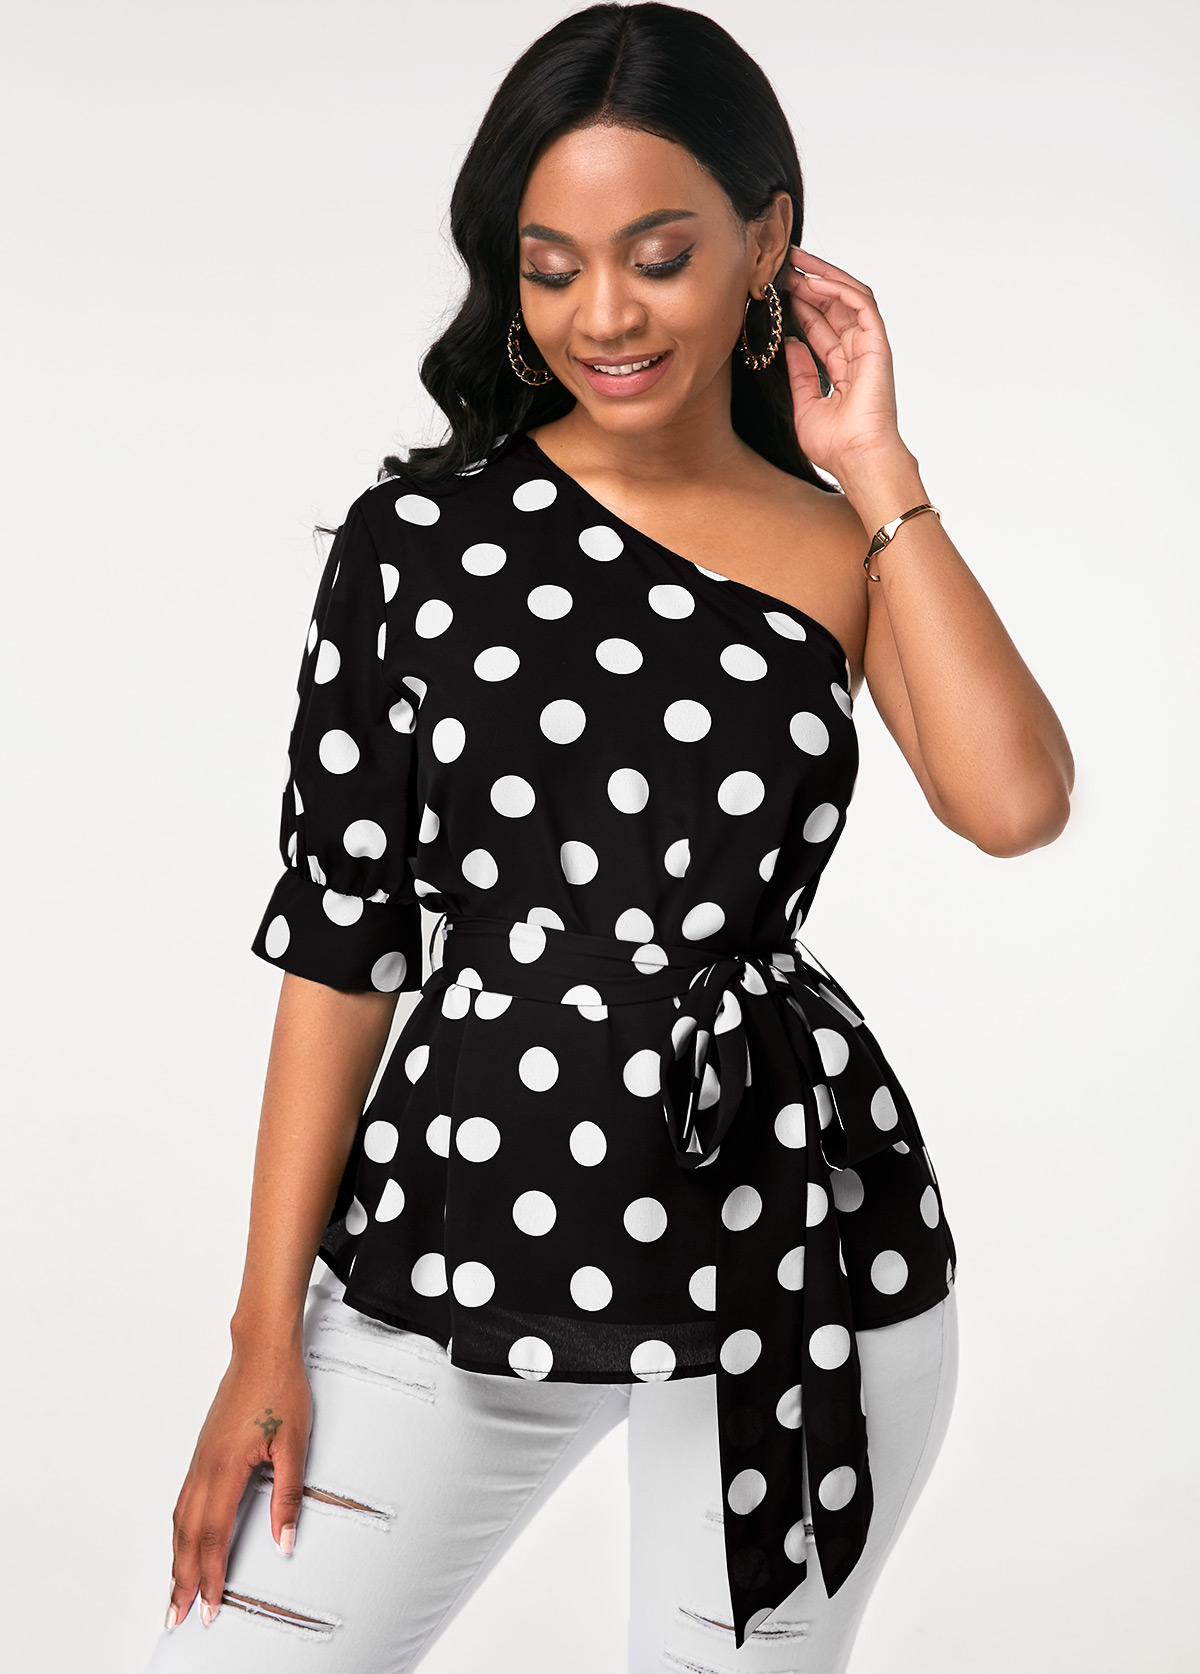 Polka Dot Print Black Skew Neck Blouse